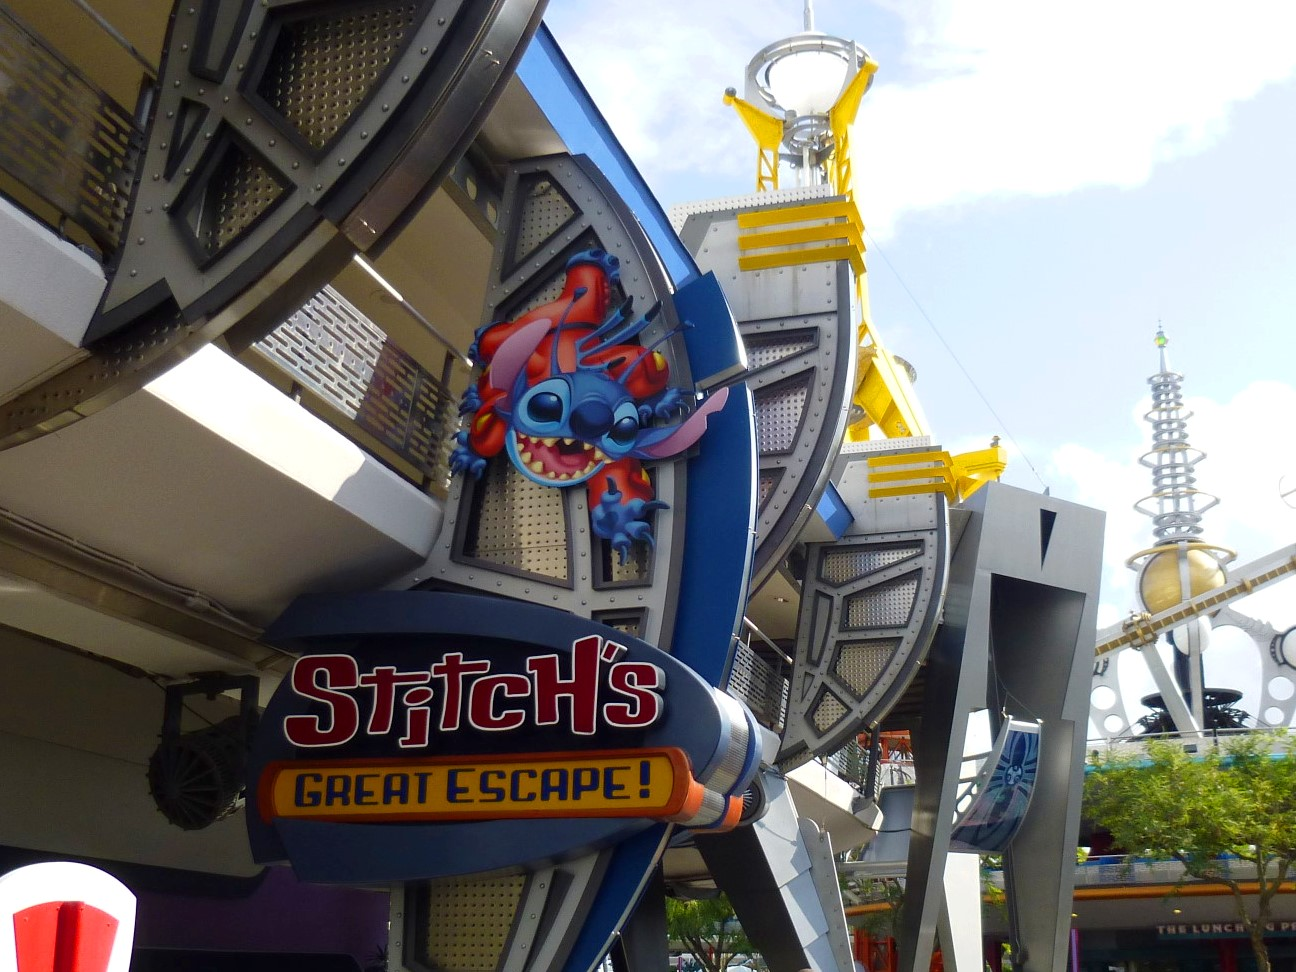 Stitchs great escape now open through august 19th at the magic stitchs great escape now open through august 19th at the magic kingdom orlando parkstop kristyandbryce Choice Image